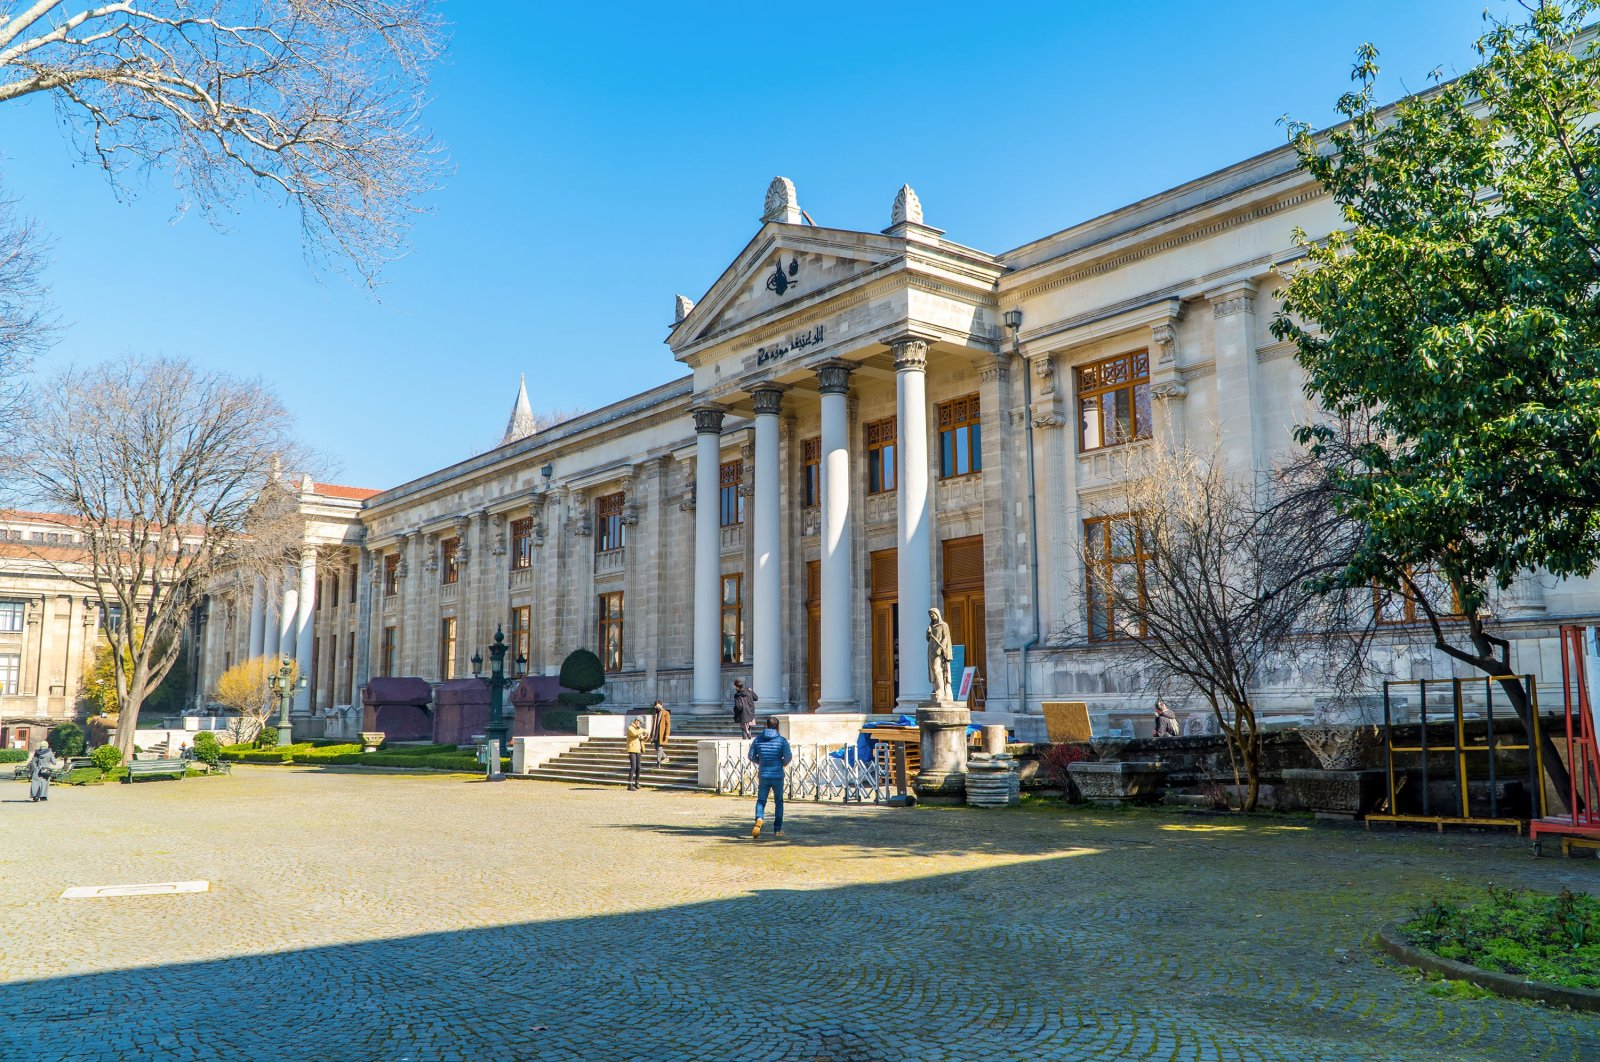 A street view of the Istanbul Archaeological Museum in Istanbul, Turkey, Feb. 23, 2021. (Shutterstock Photo)